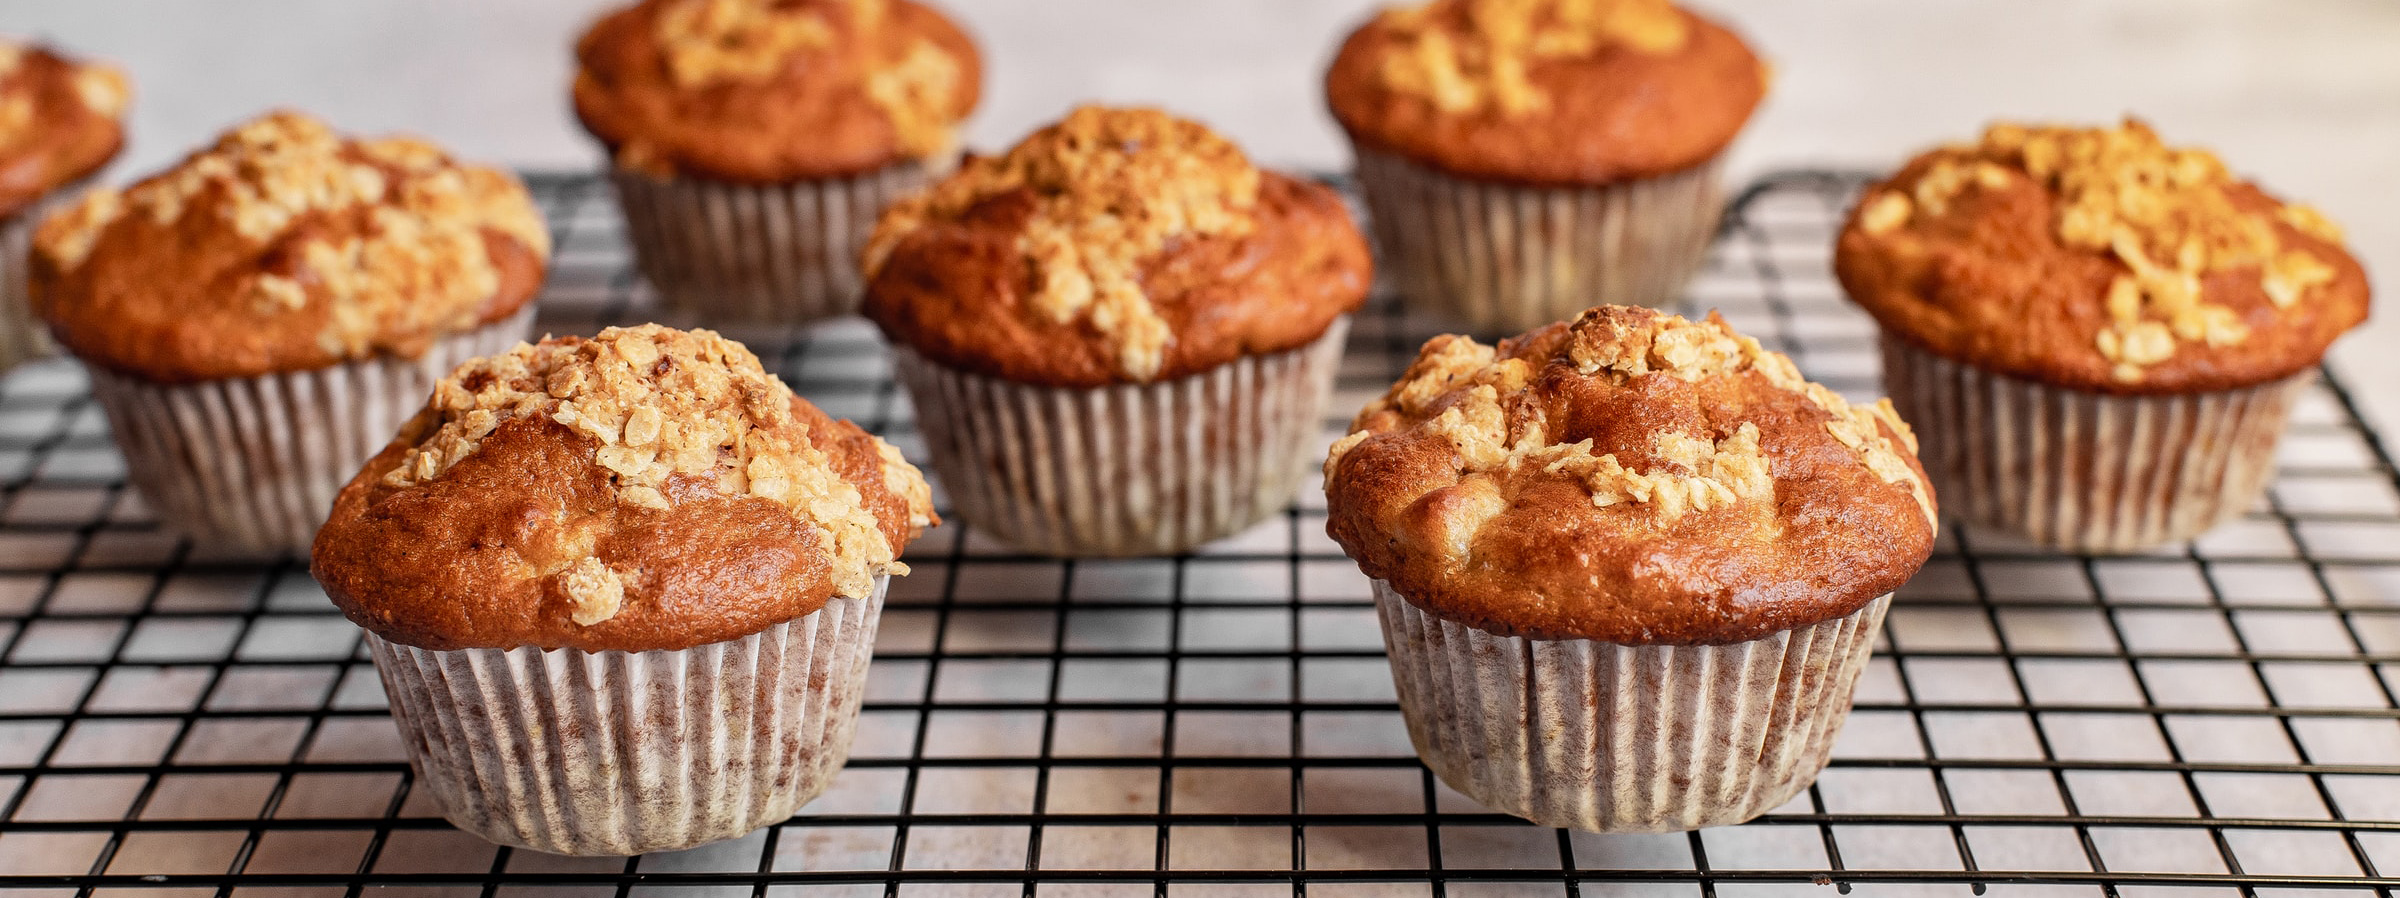 Muffins fresh out of the oven.